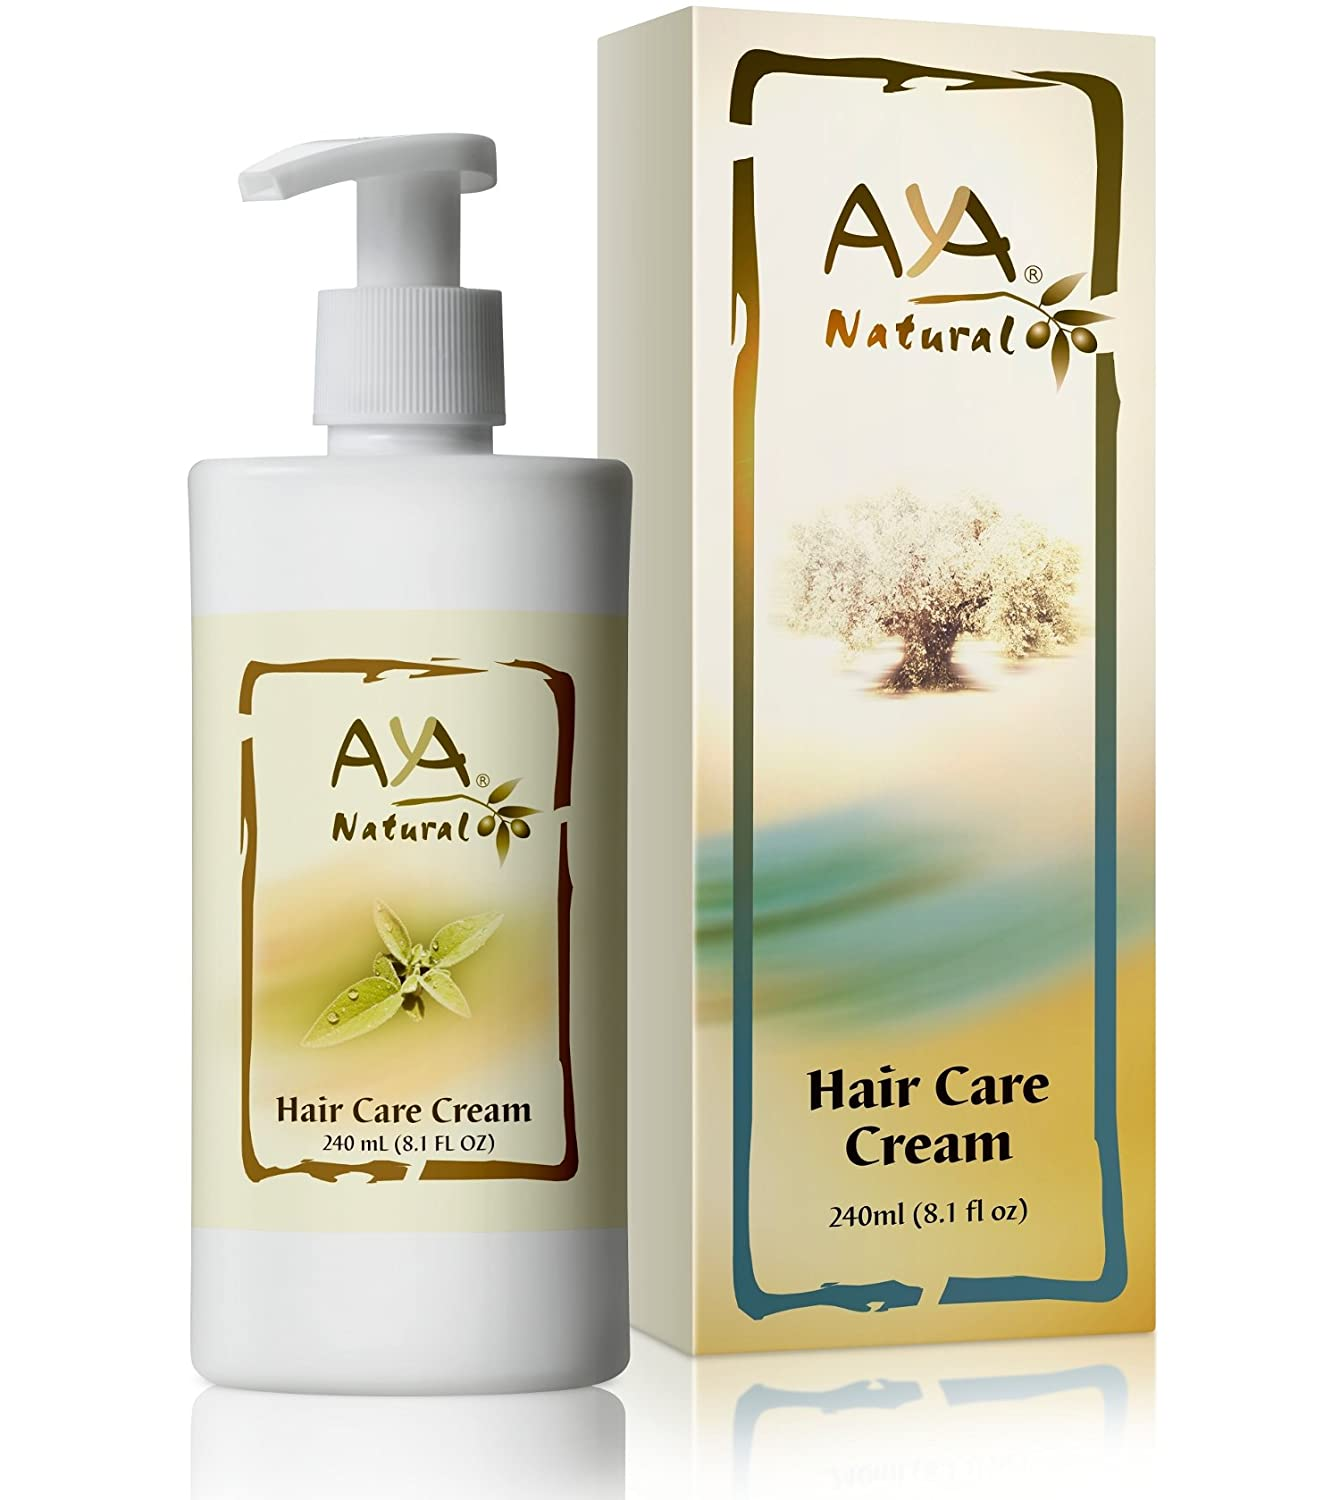 Aya Natural Leave In Hair Conditioner - Vegan Anti Frizz Hair Care Nourishing Cream with Olive & Jojoba Oil, Coconut & Rosemary Oils Blend